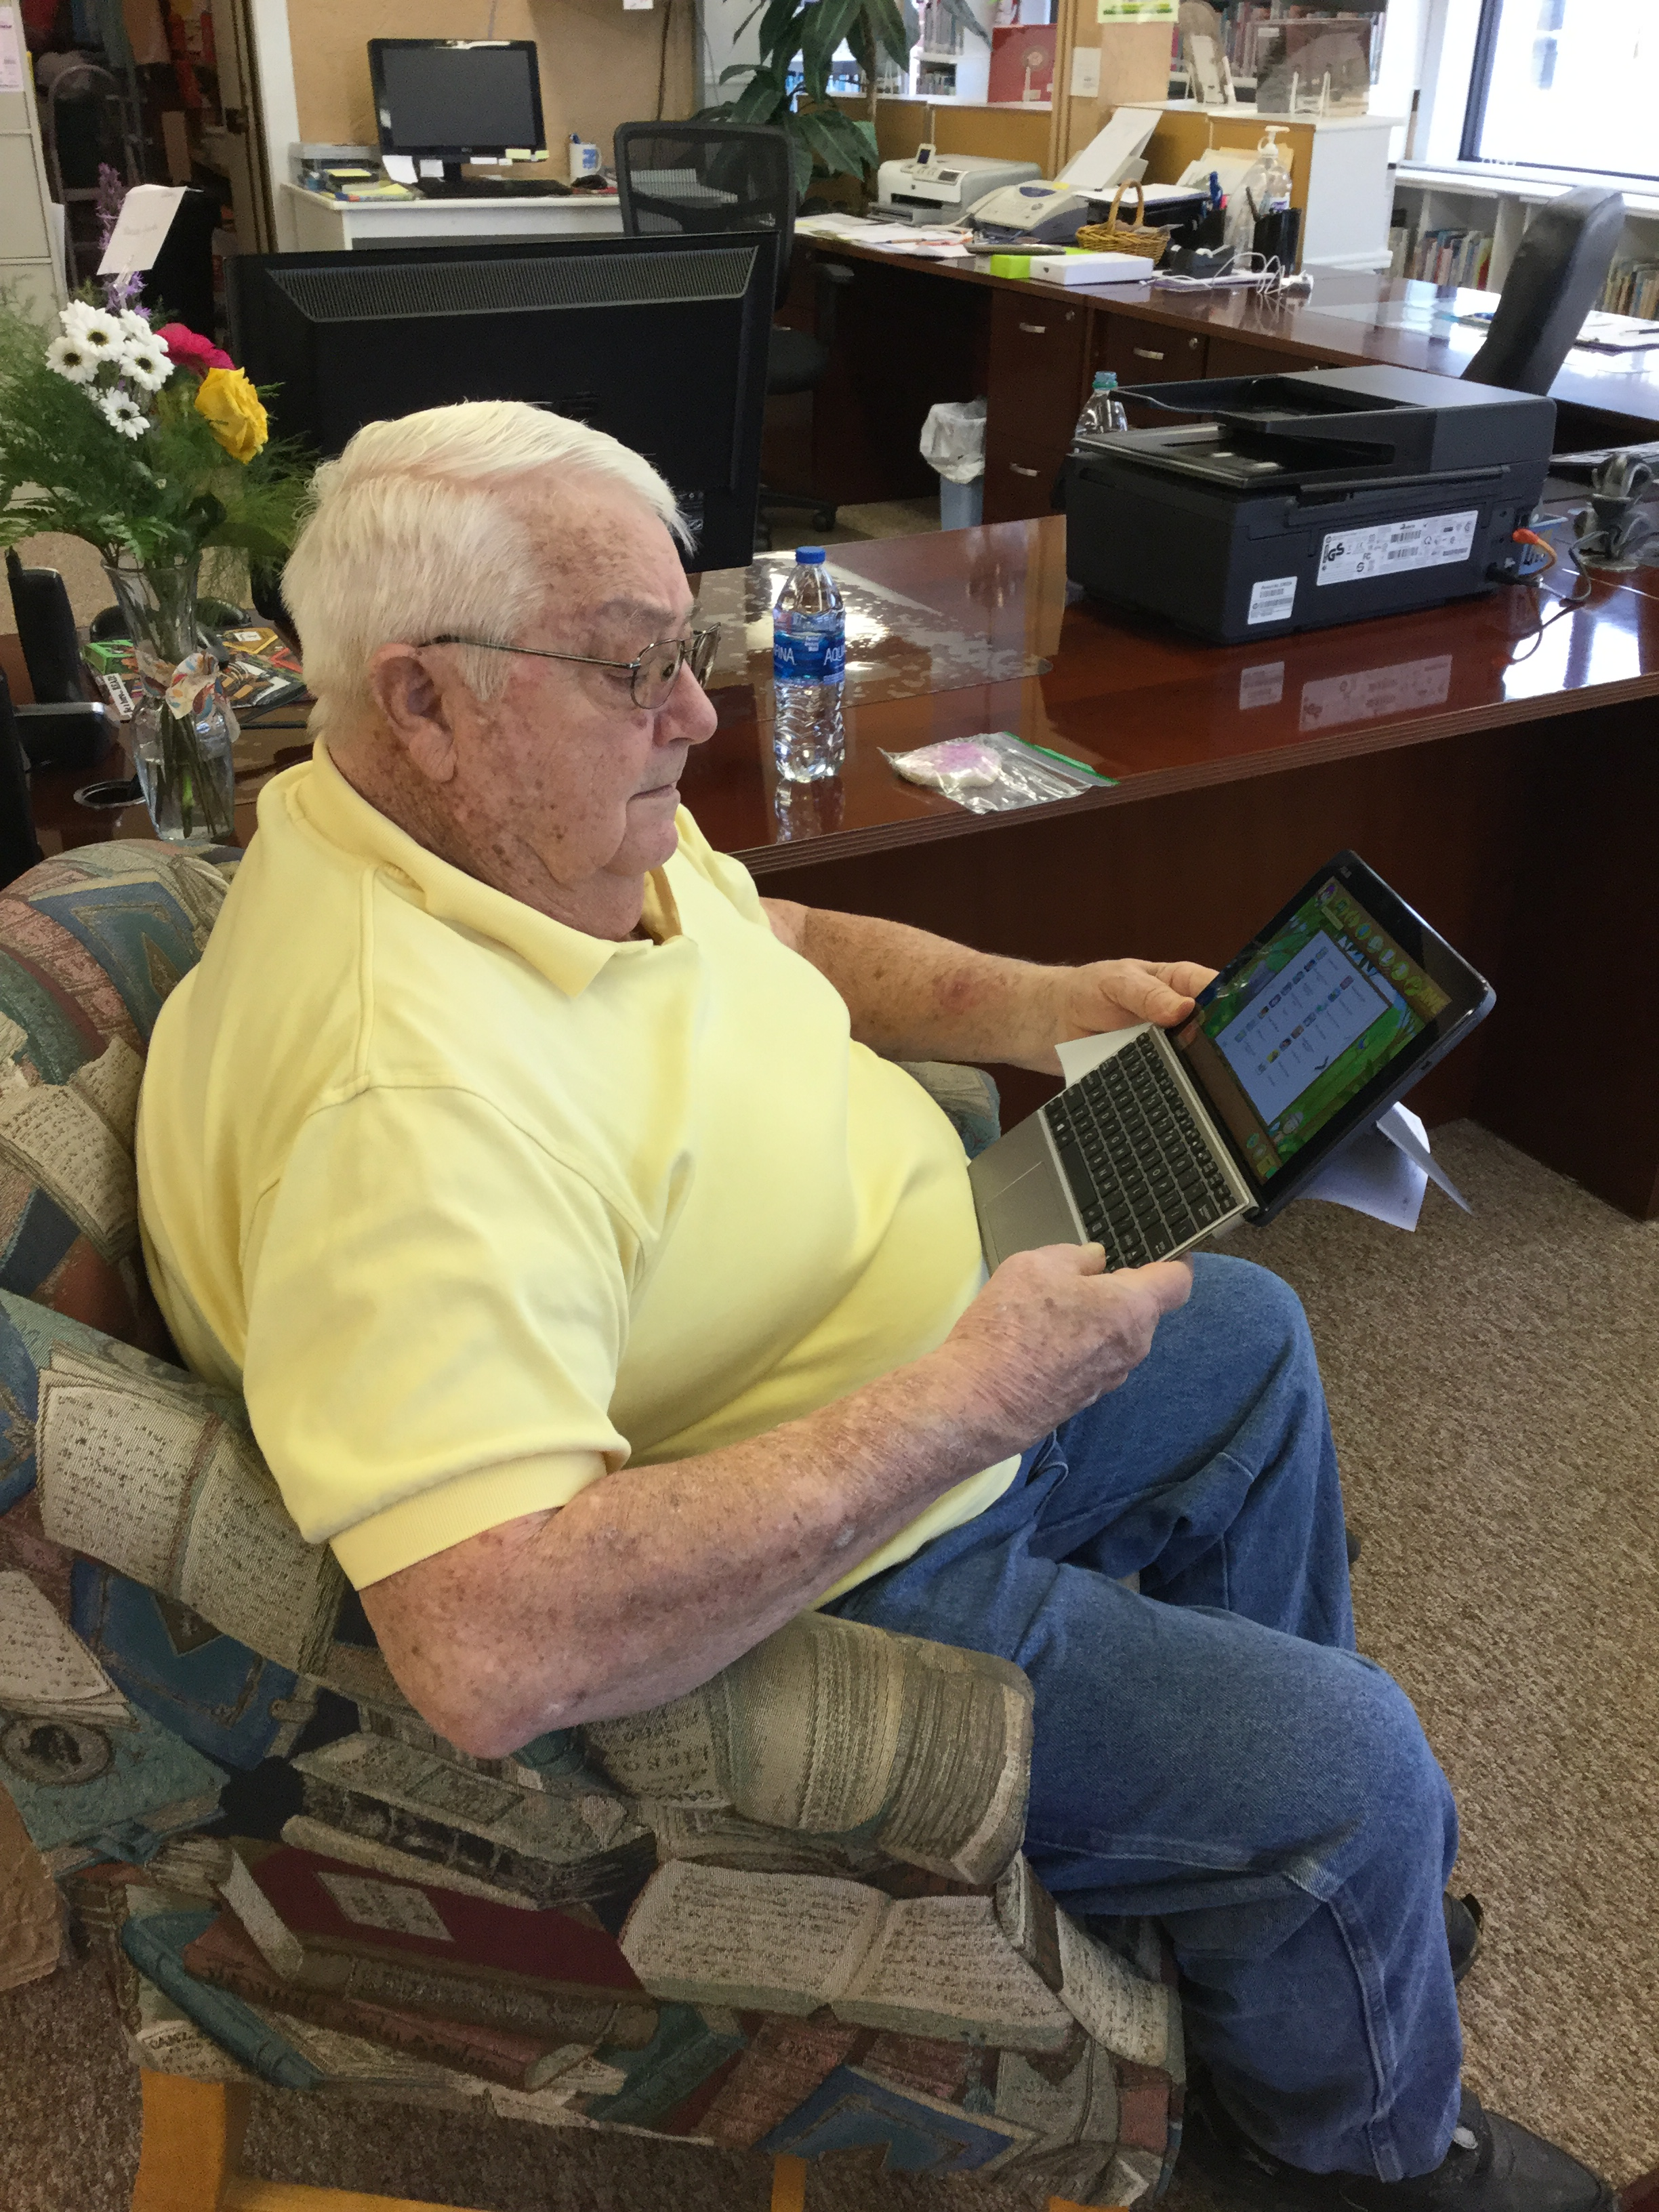 senior gentleman using a tablet to find info